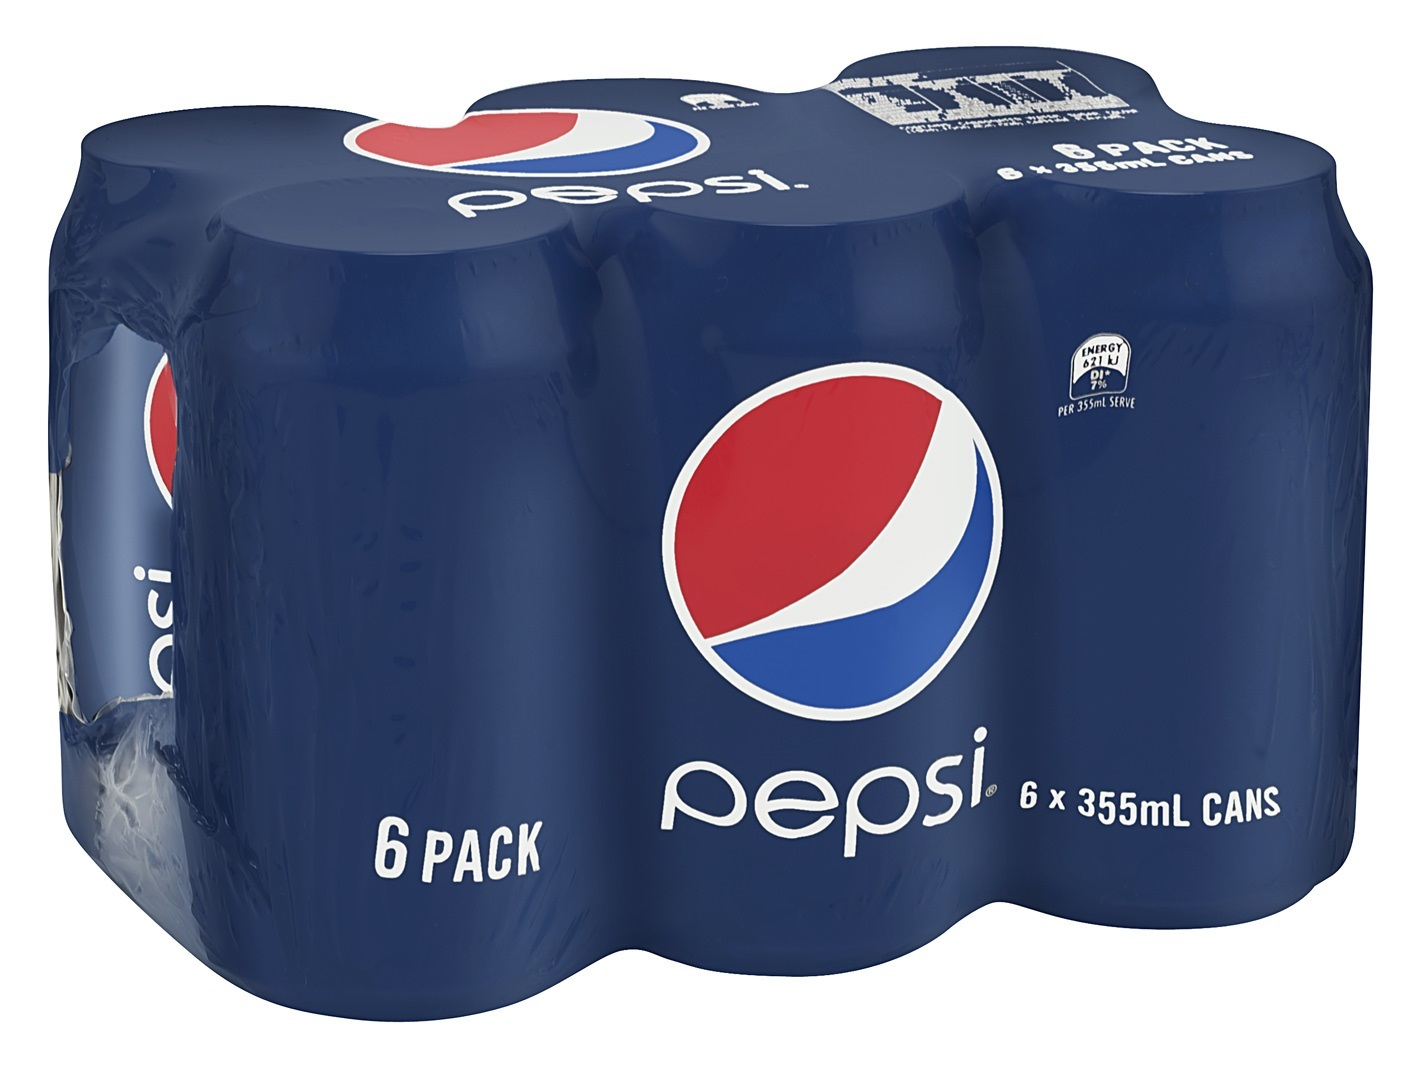 Pepsi Cans 355ml (24 Pack) image